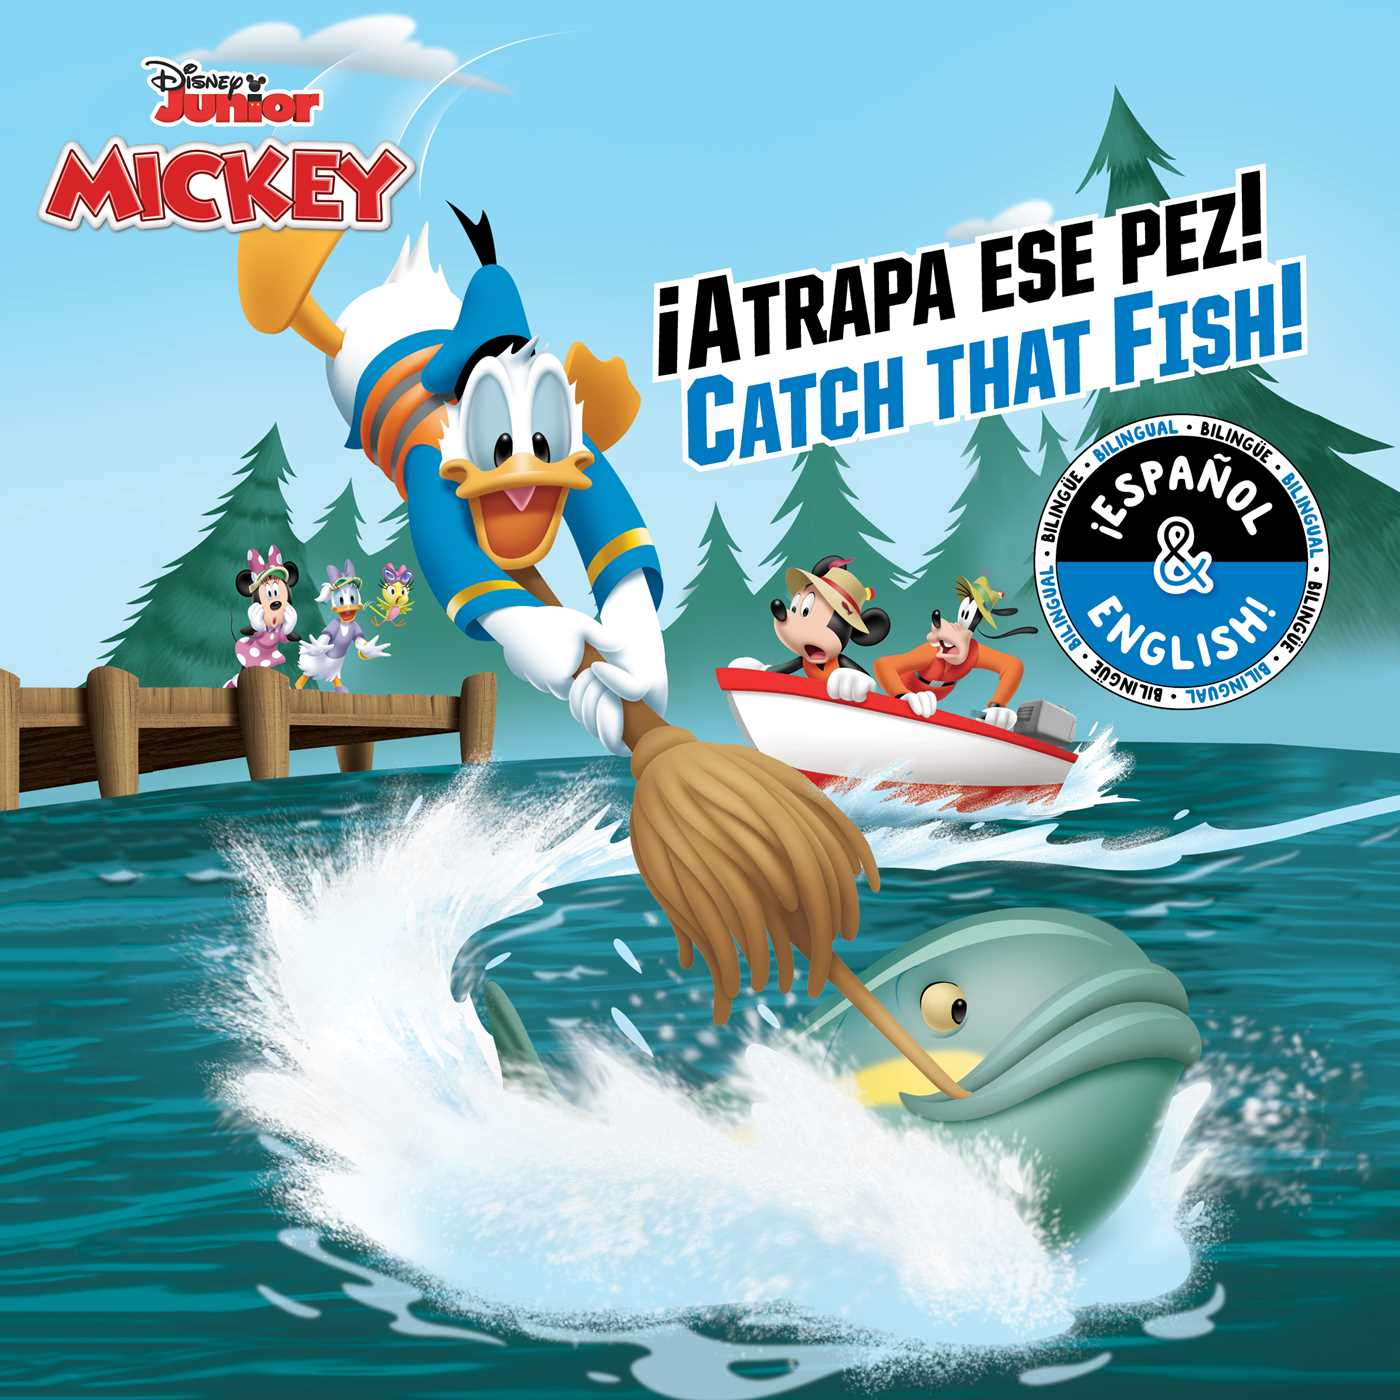 Catch that fish atrapa ese pez english spanish disney junior mickey and the roadster 9781499807974 hr